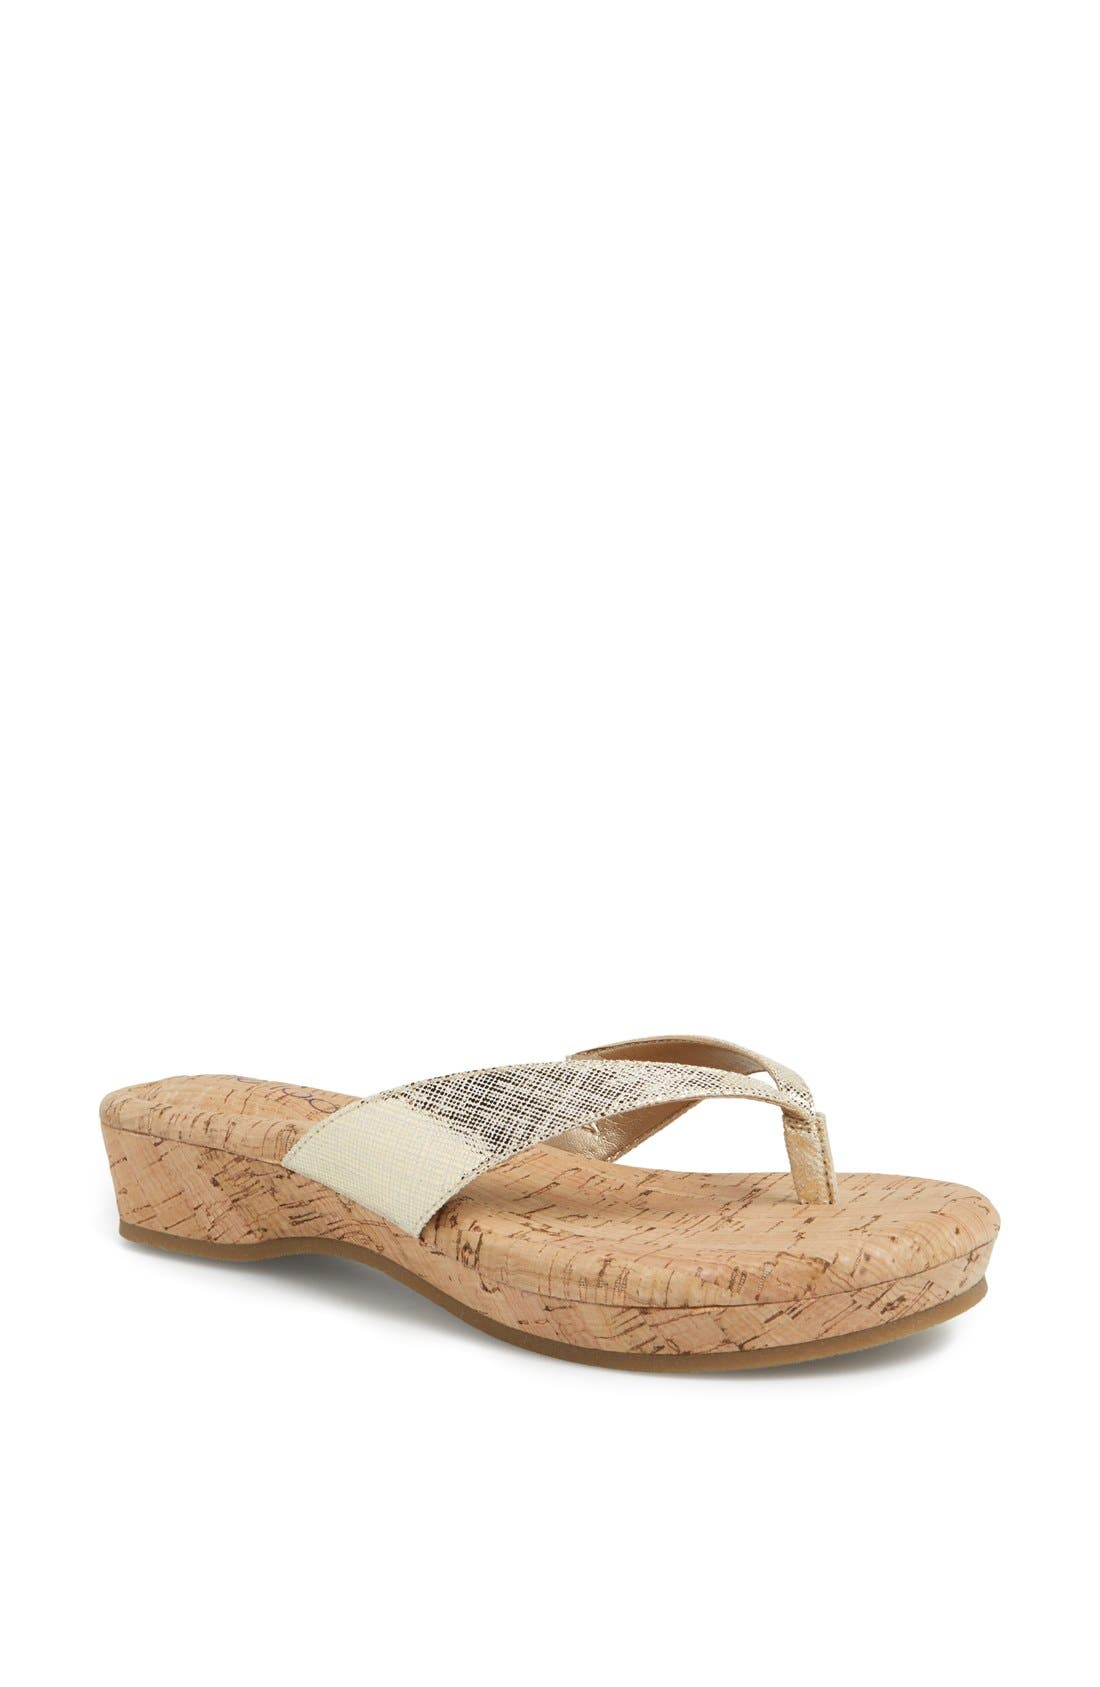 Alternate Image 1 Selected - Me Too 'Clare 2' Thong Sandal